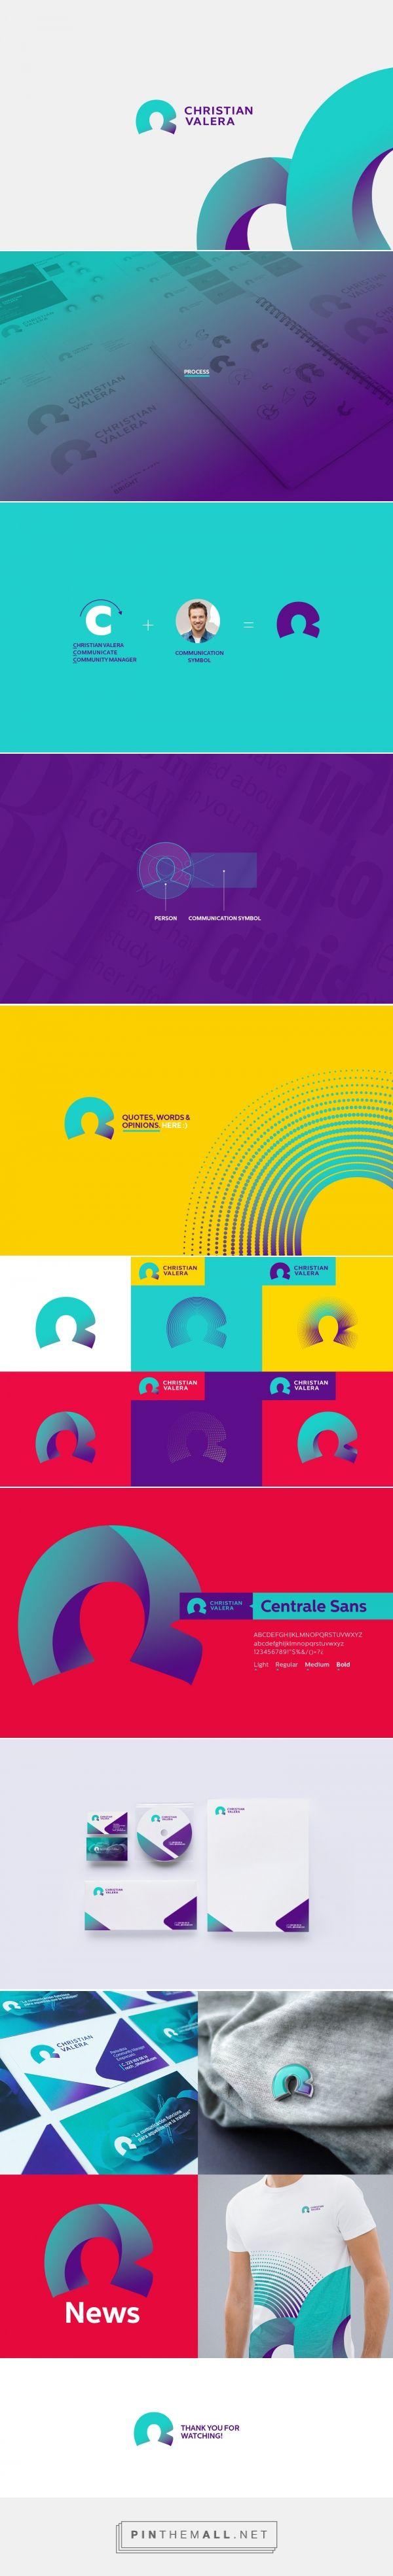 Christian Valera - Communication Branding on Behance... - a grouped images picture - Pin Them All http://amzn.to/2rwWBKS